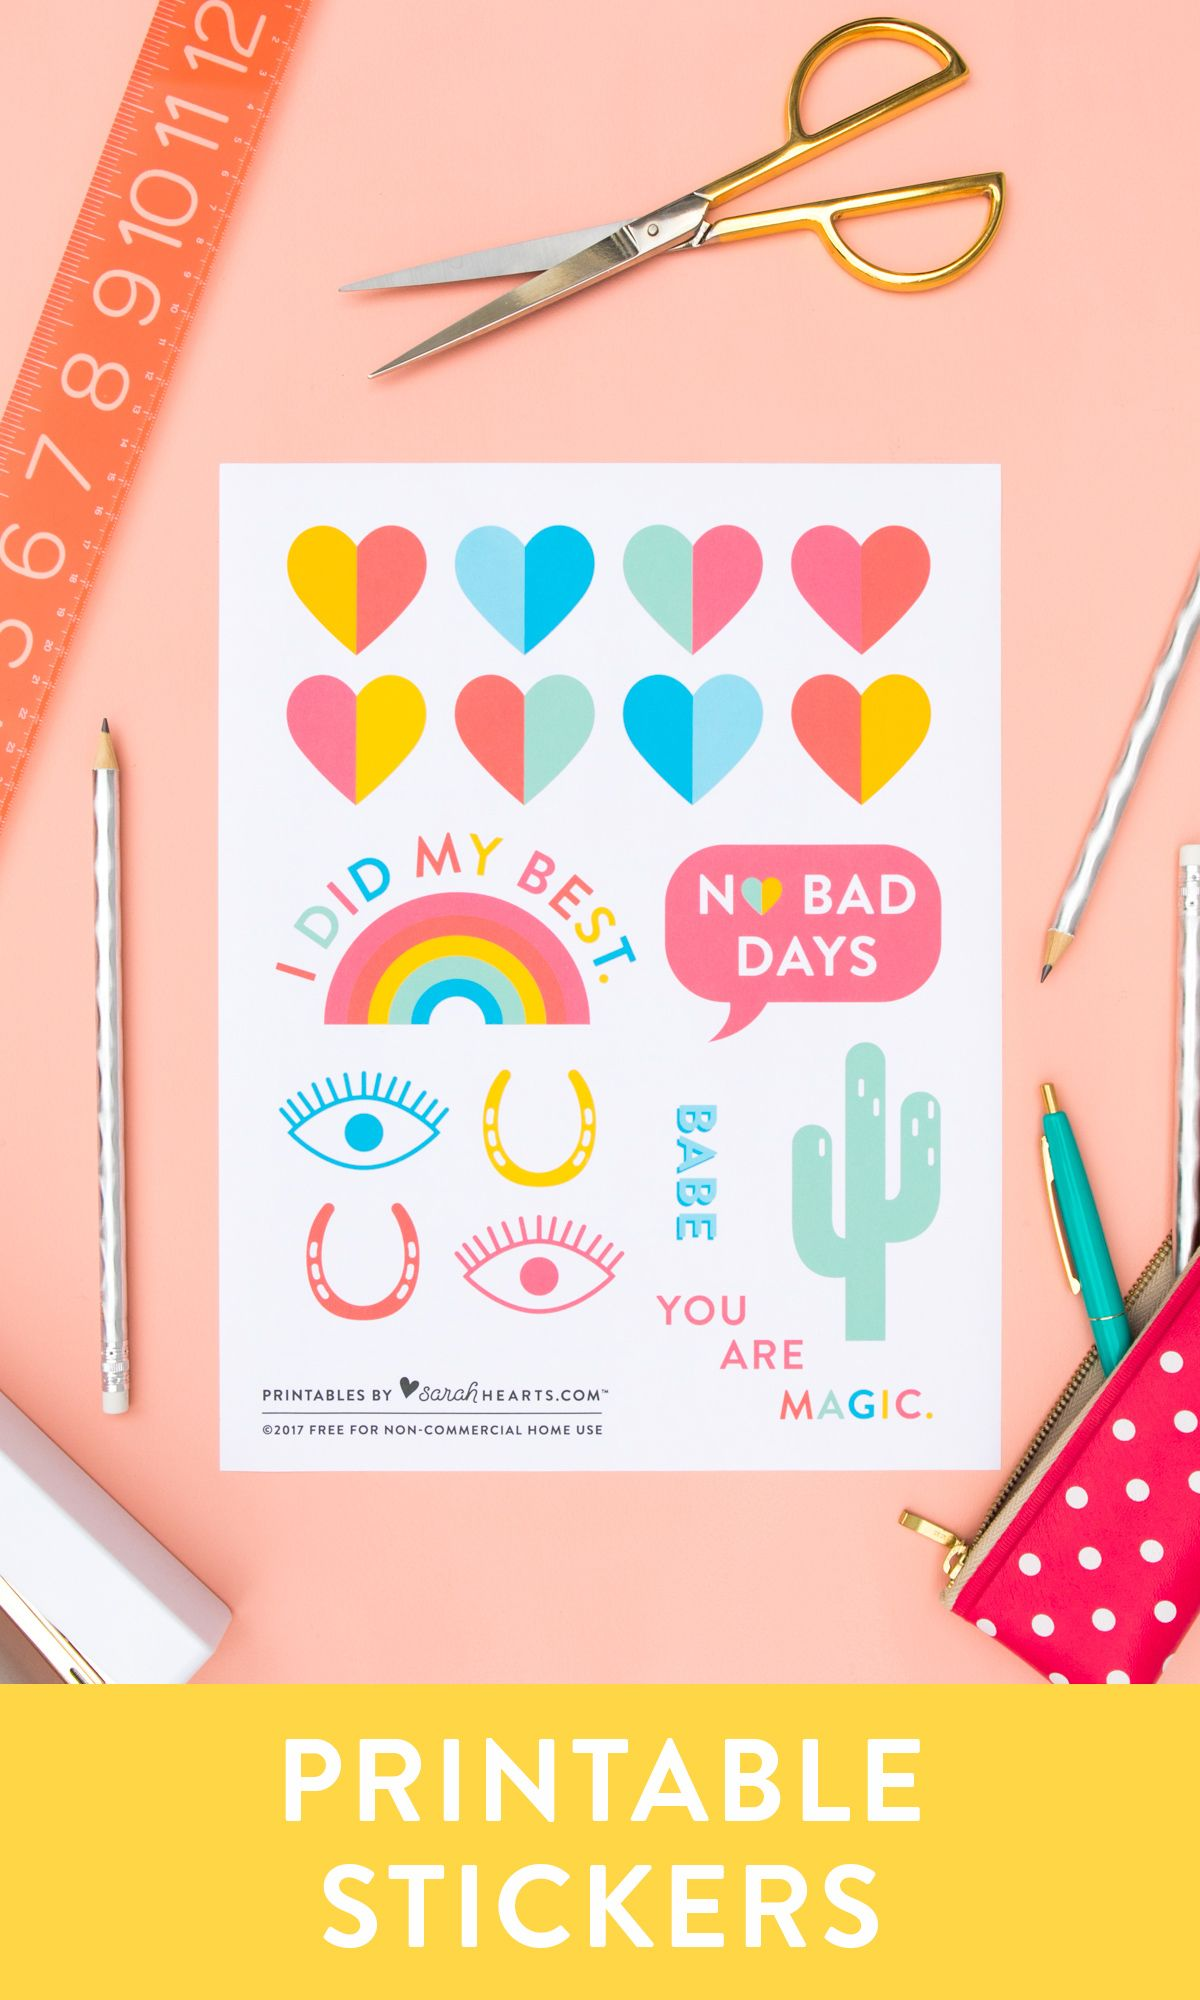 Free printable back to school stickers print them on avery white clear or metallic sticker paper to customize all your supplies